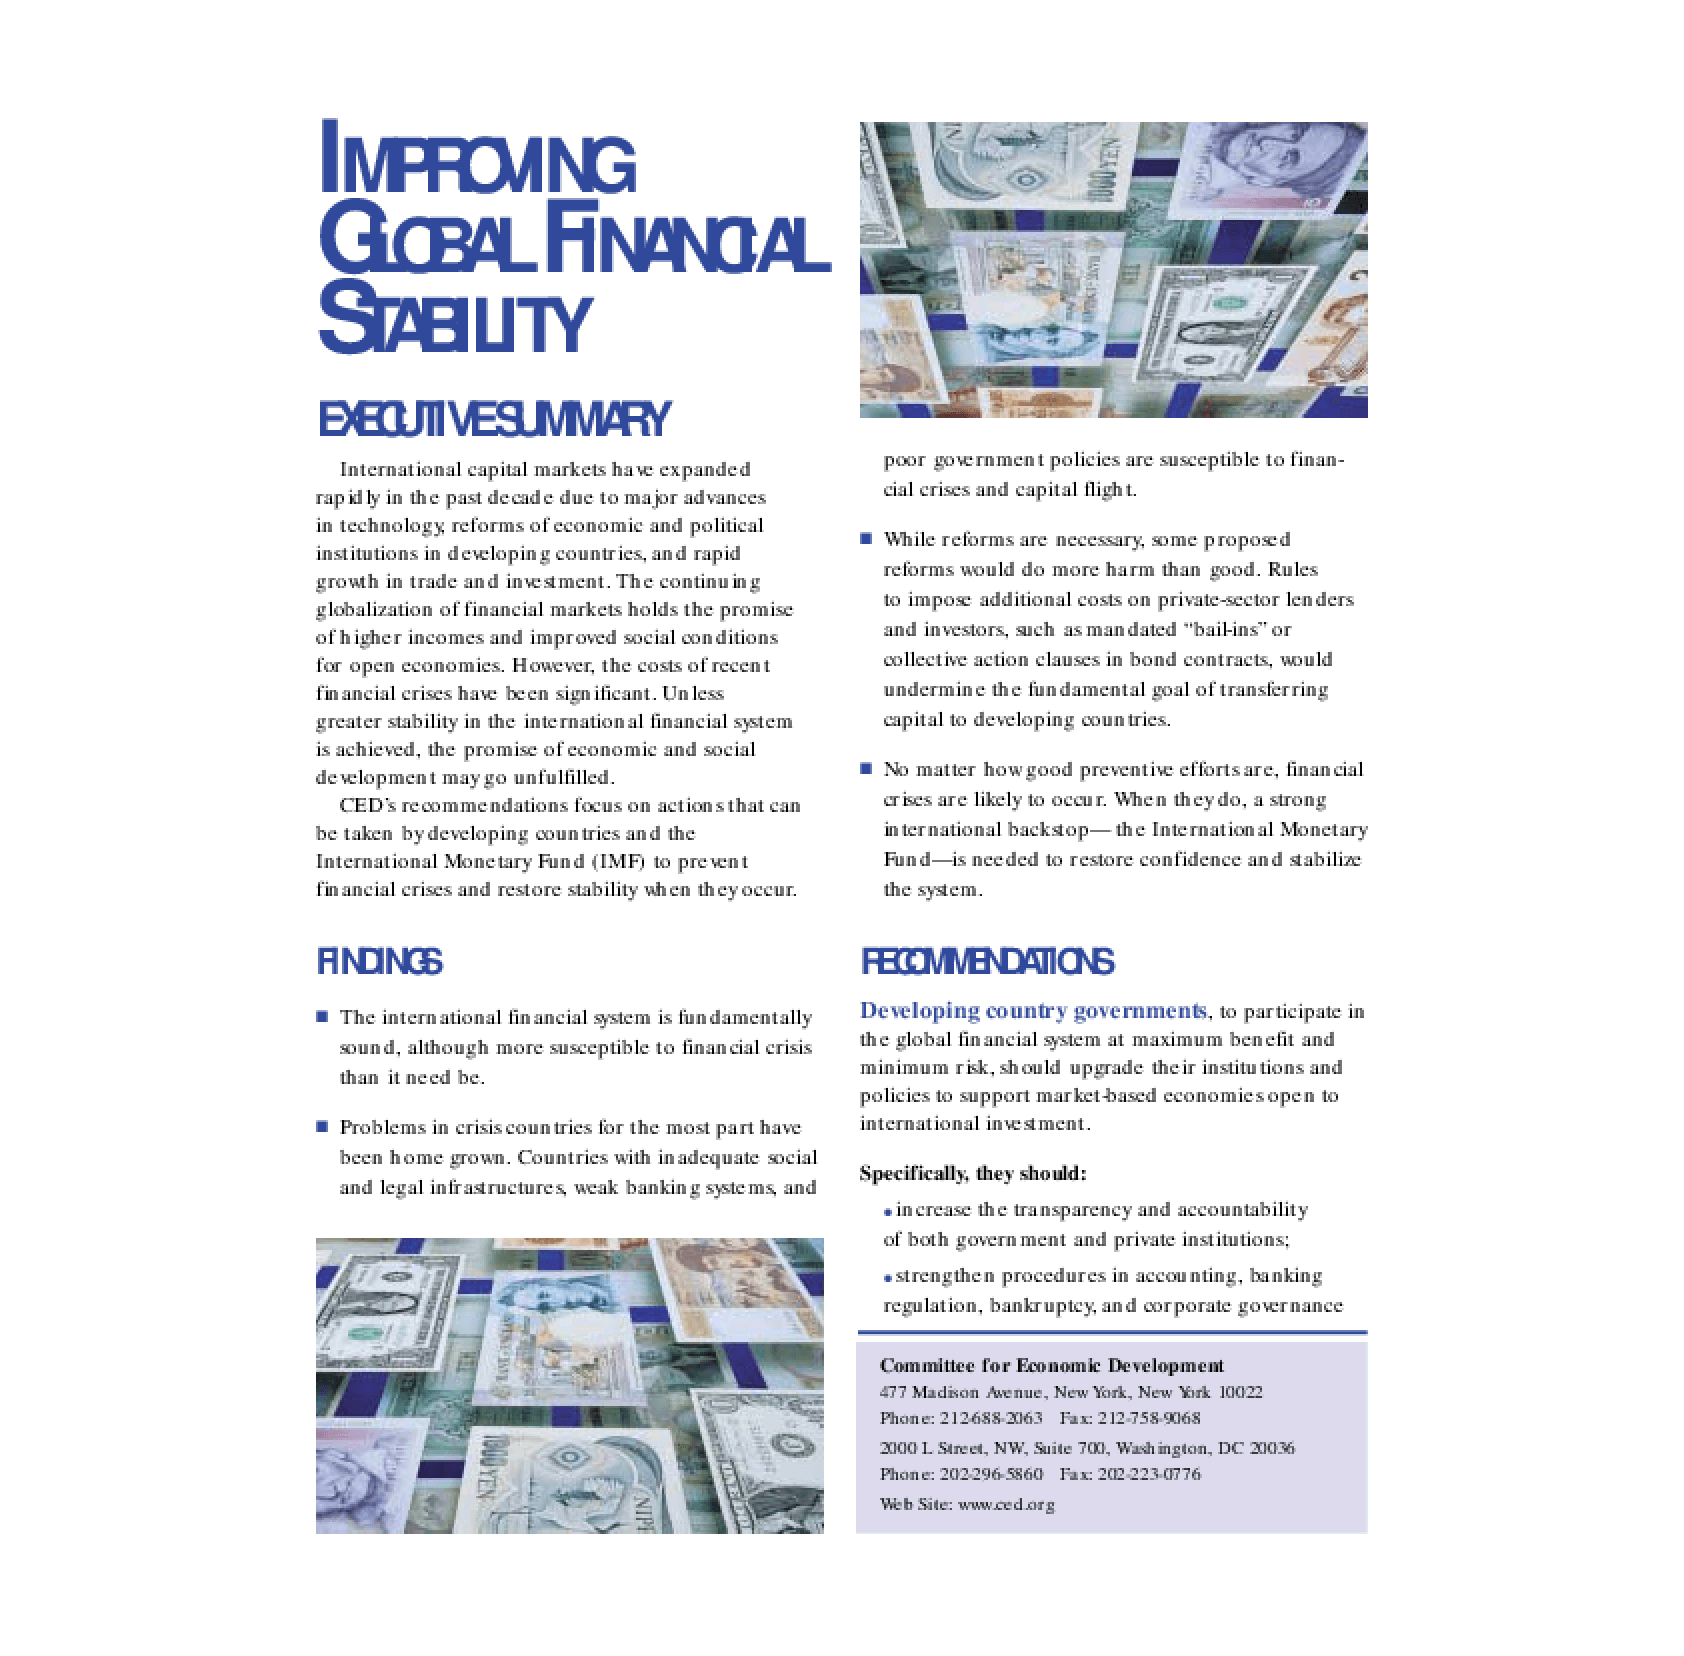 Improving Global Financial Stability - Executive Summary